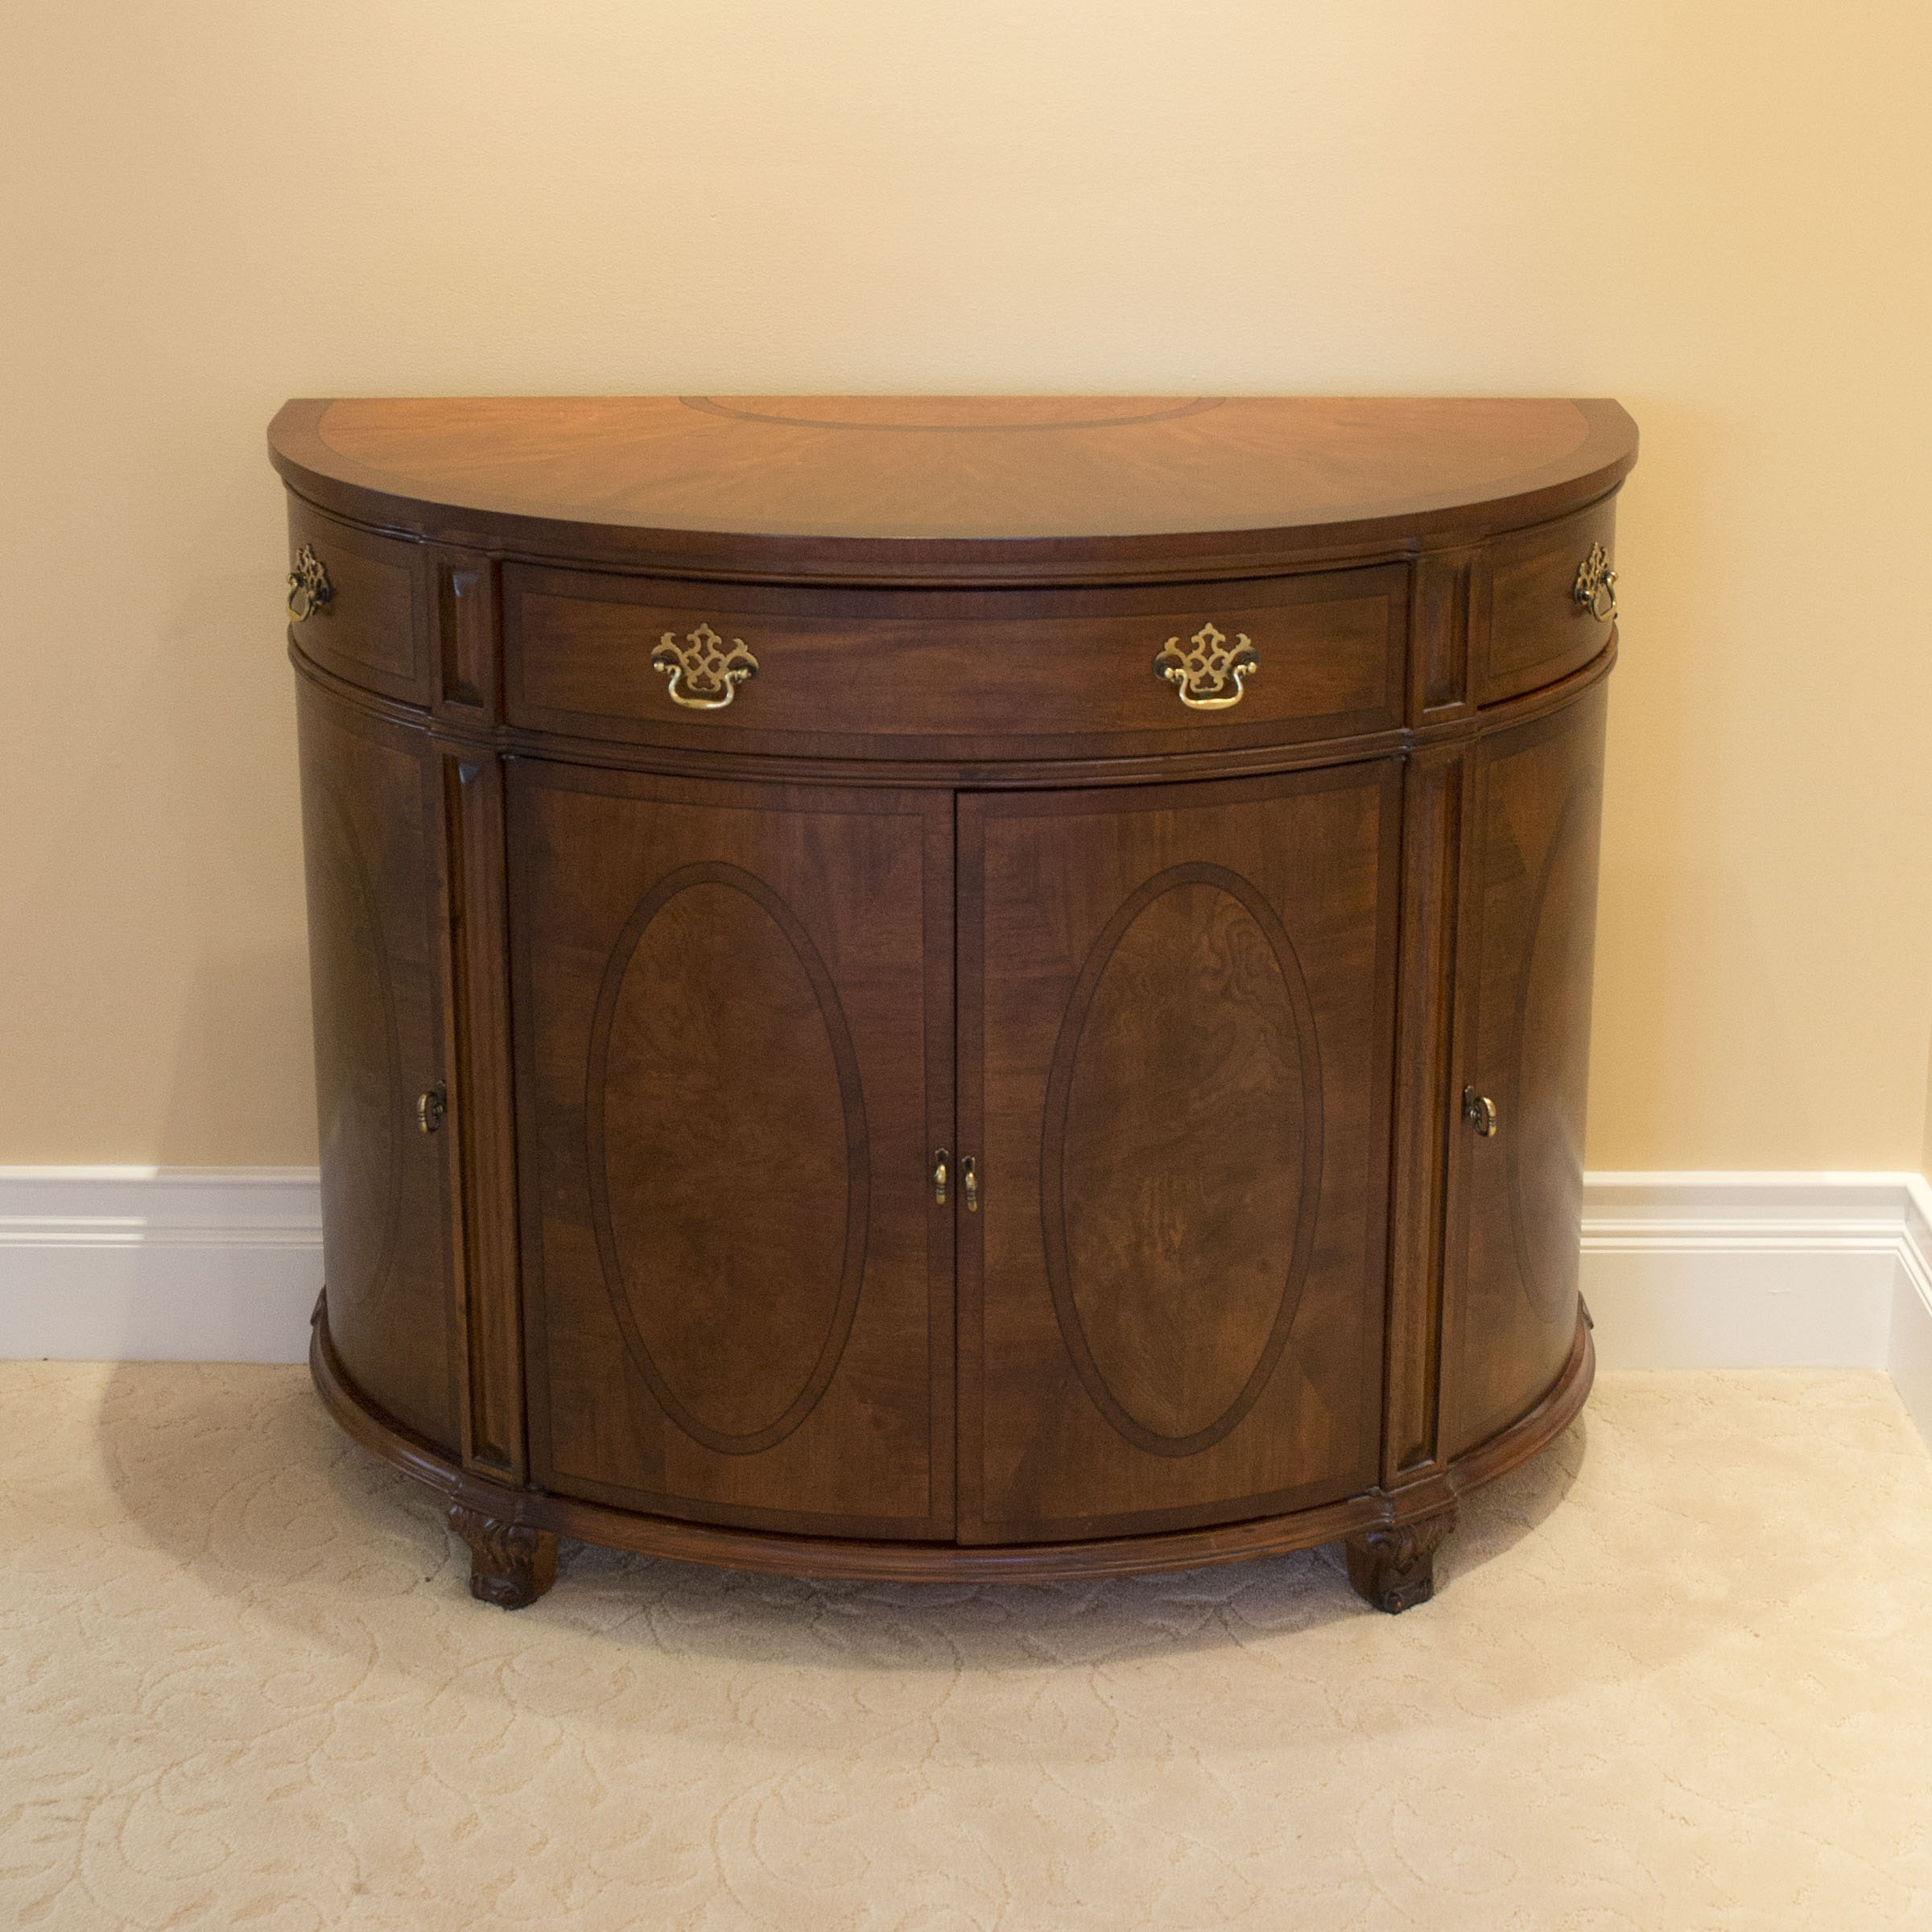 Merveilleux Shenandoah Valley Furniture Rounded Buffet Table ...